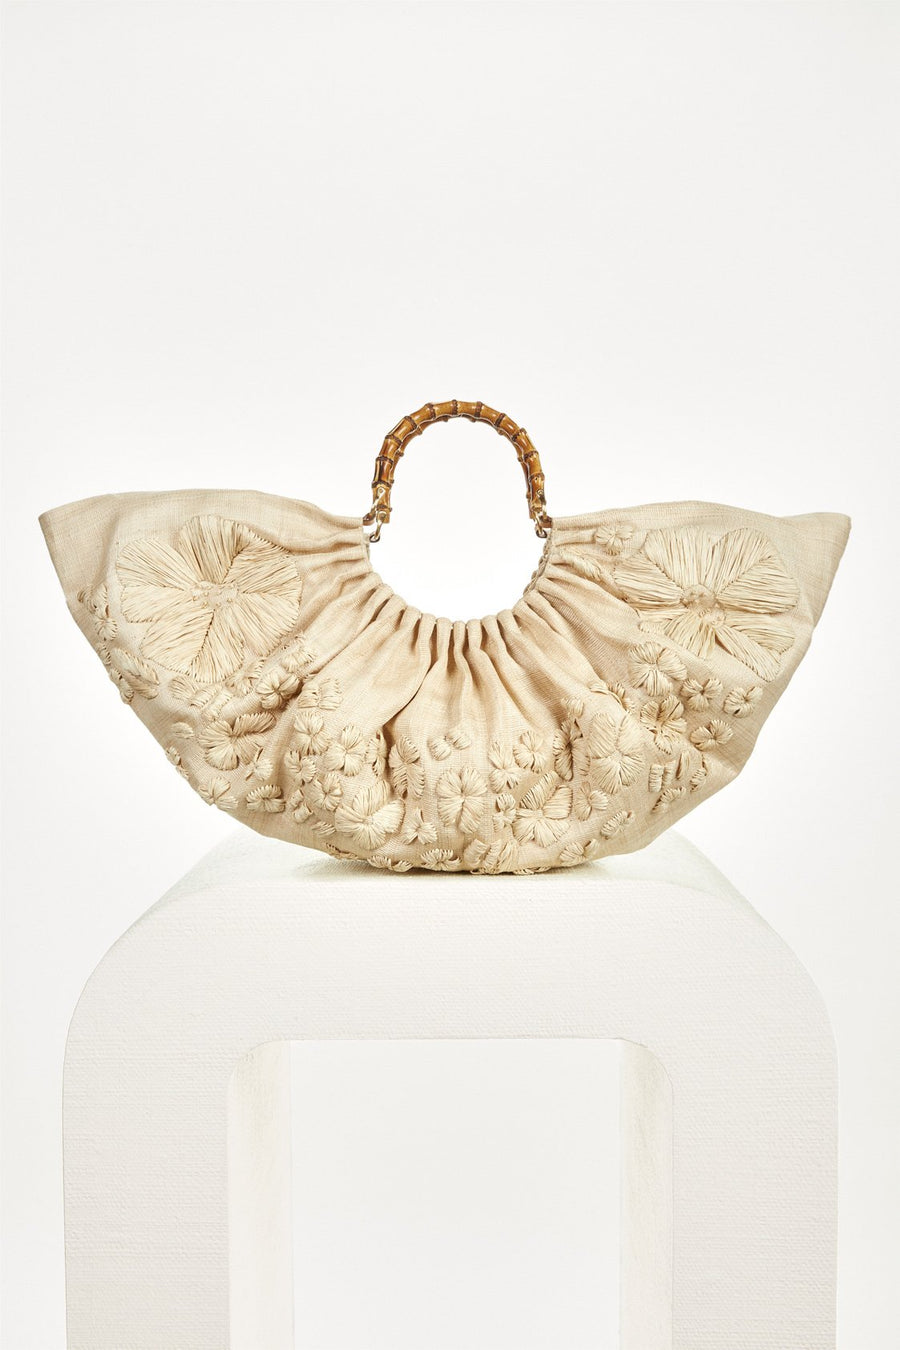 BANU LARGE BAG - NATURAL EMBROIDERED